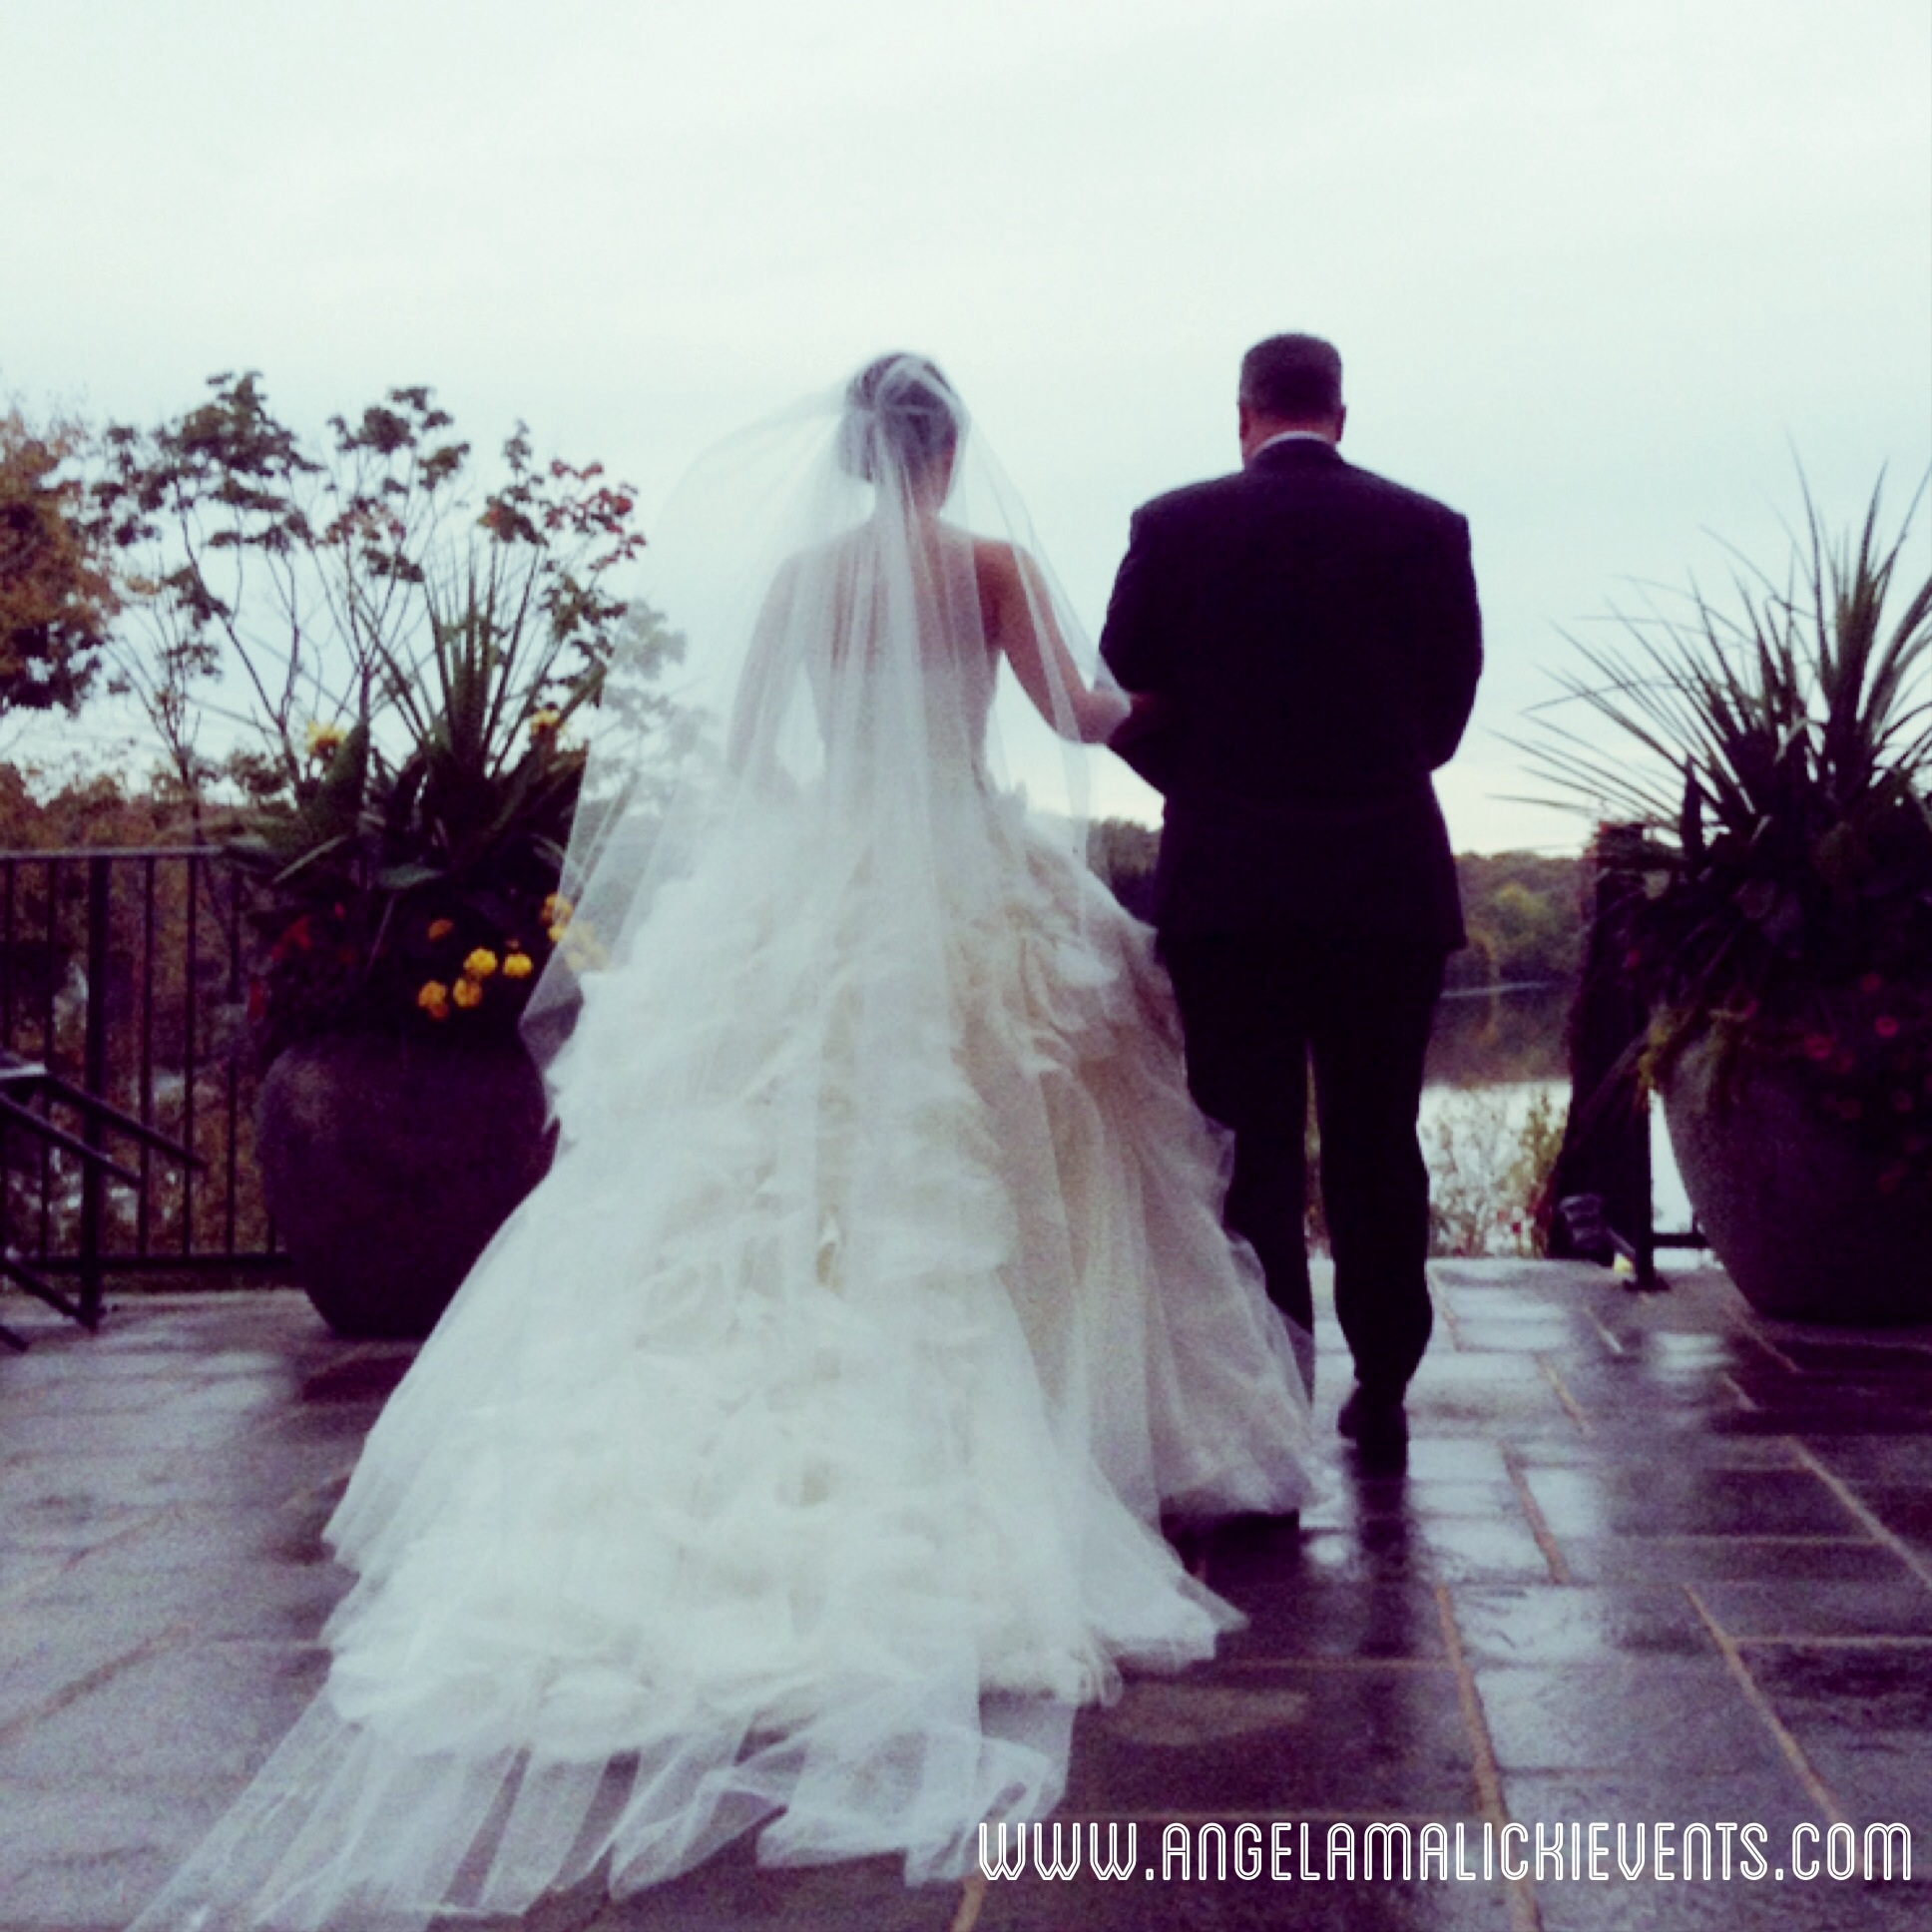 Philadelphia Wedding Planner, Angela MALICKI events, The Lakehouse Inn, Perkasie